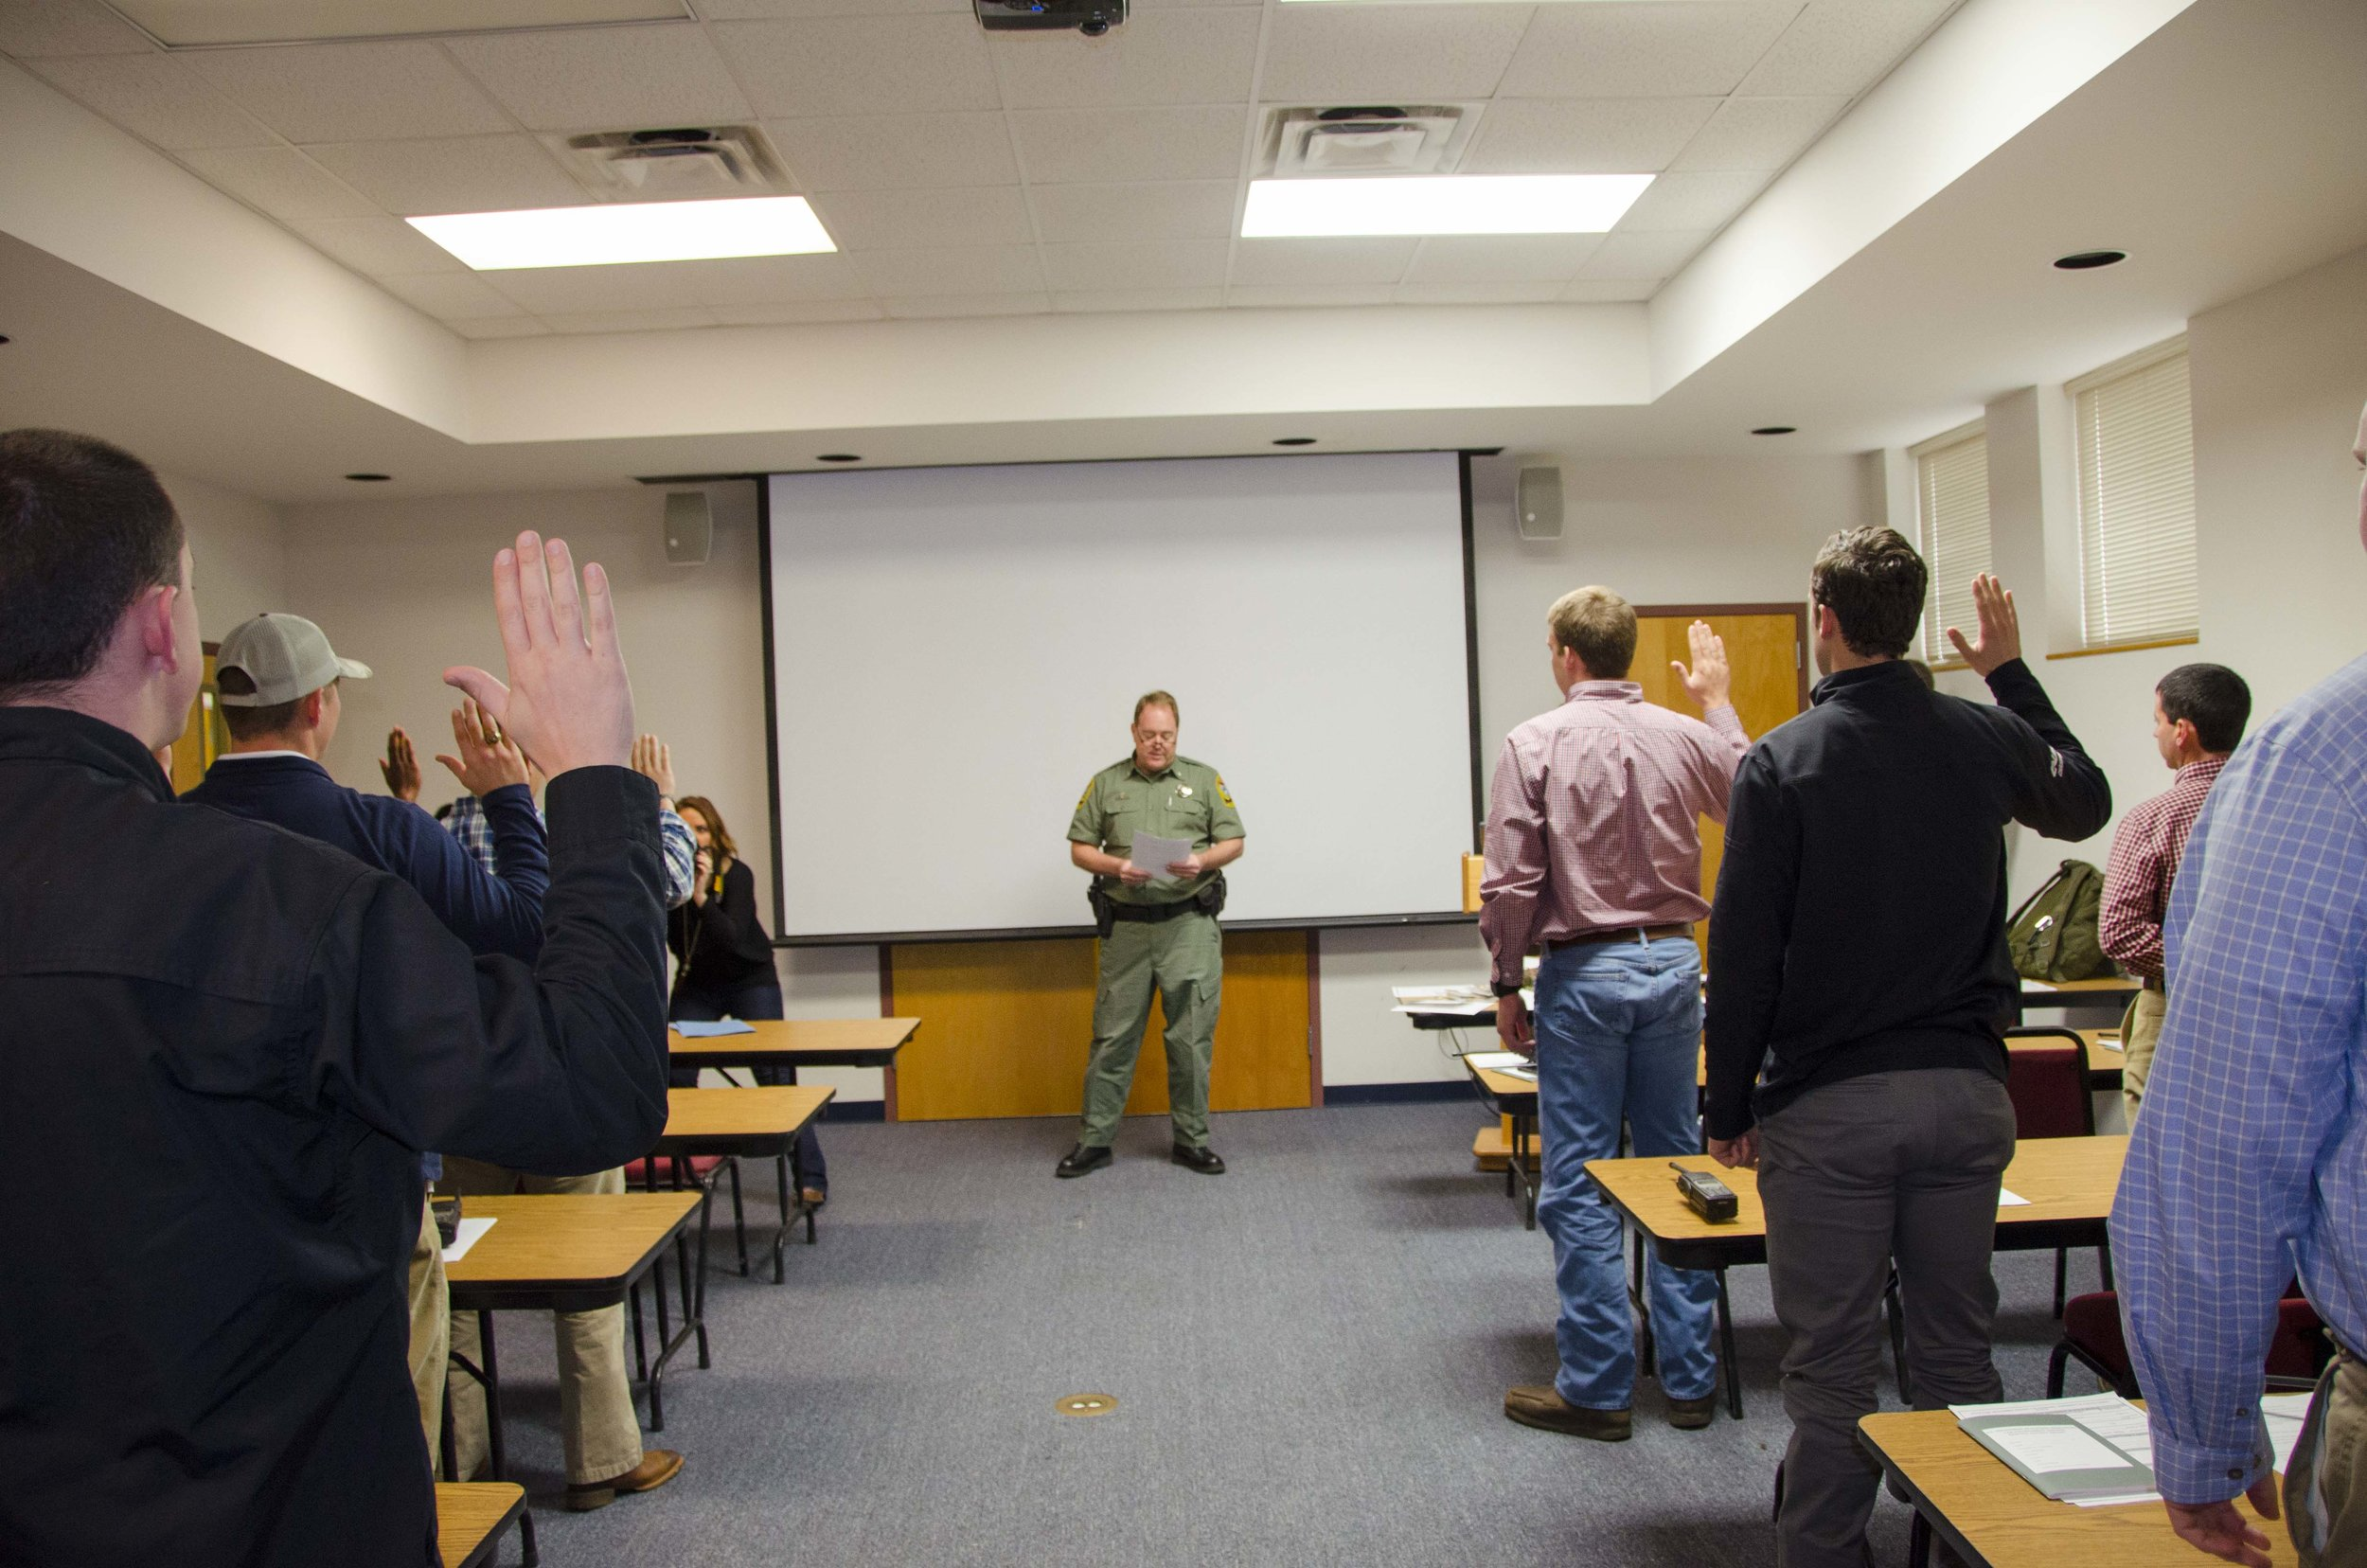 A new group of SCDNR Officers is sworn in by Law Enforcement Division Deputy Director, Col. Chisolm Frampton; January 17, 2017.